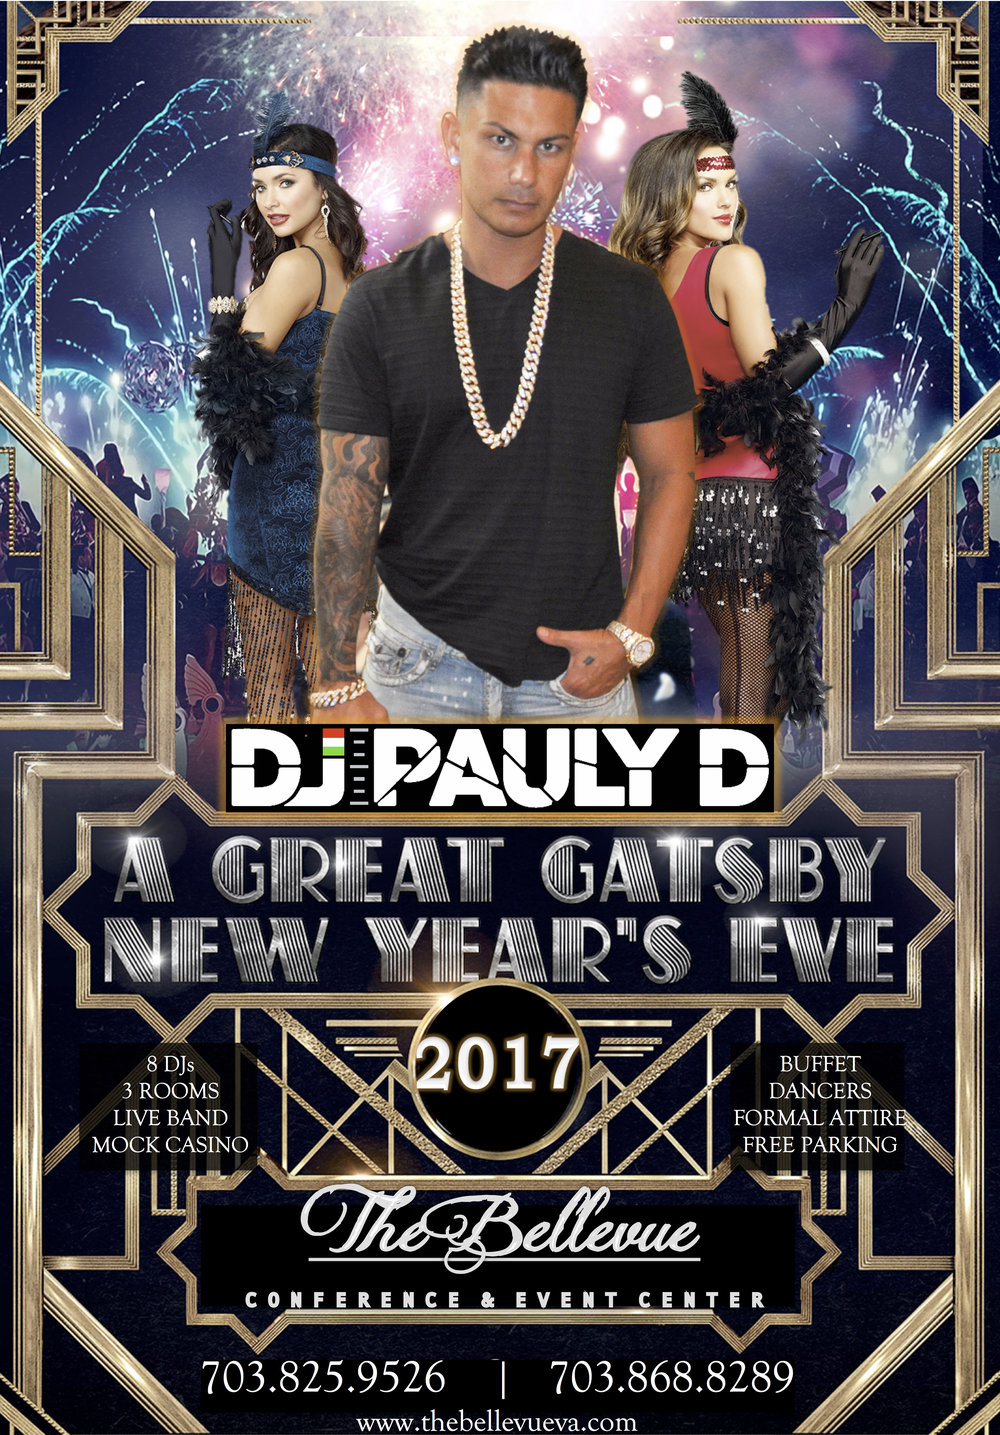 A Great Gatsby New Years Eve with DJ PAULY D December 31st 2016